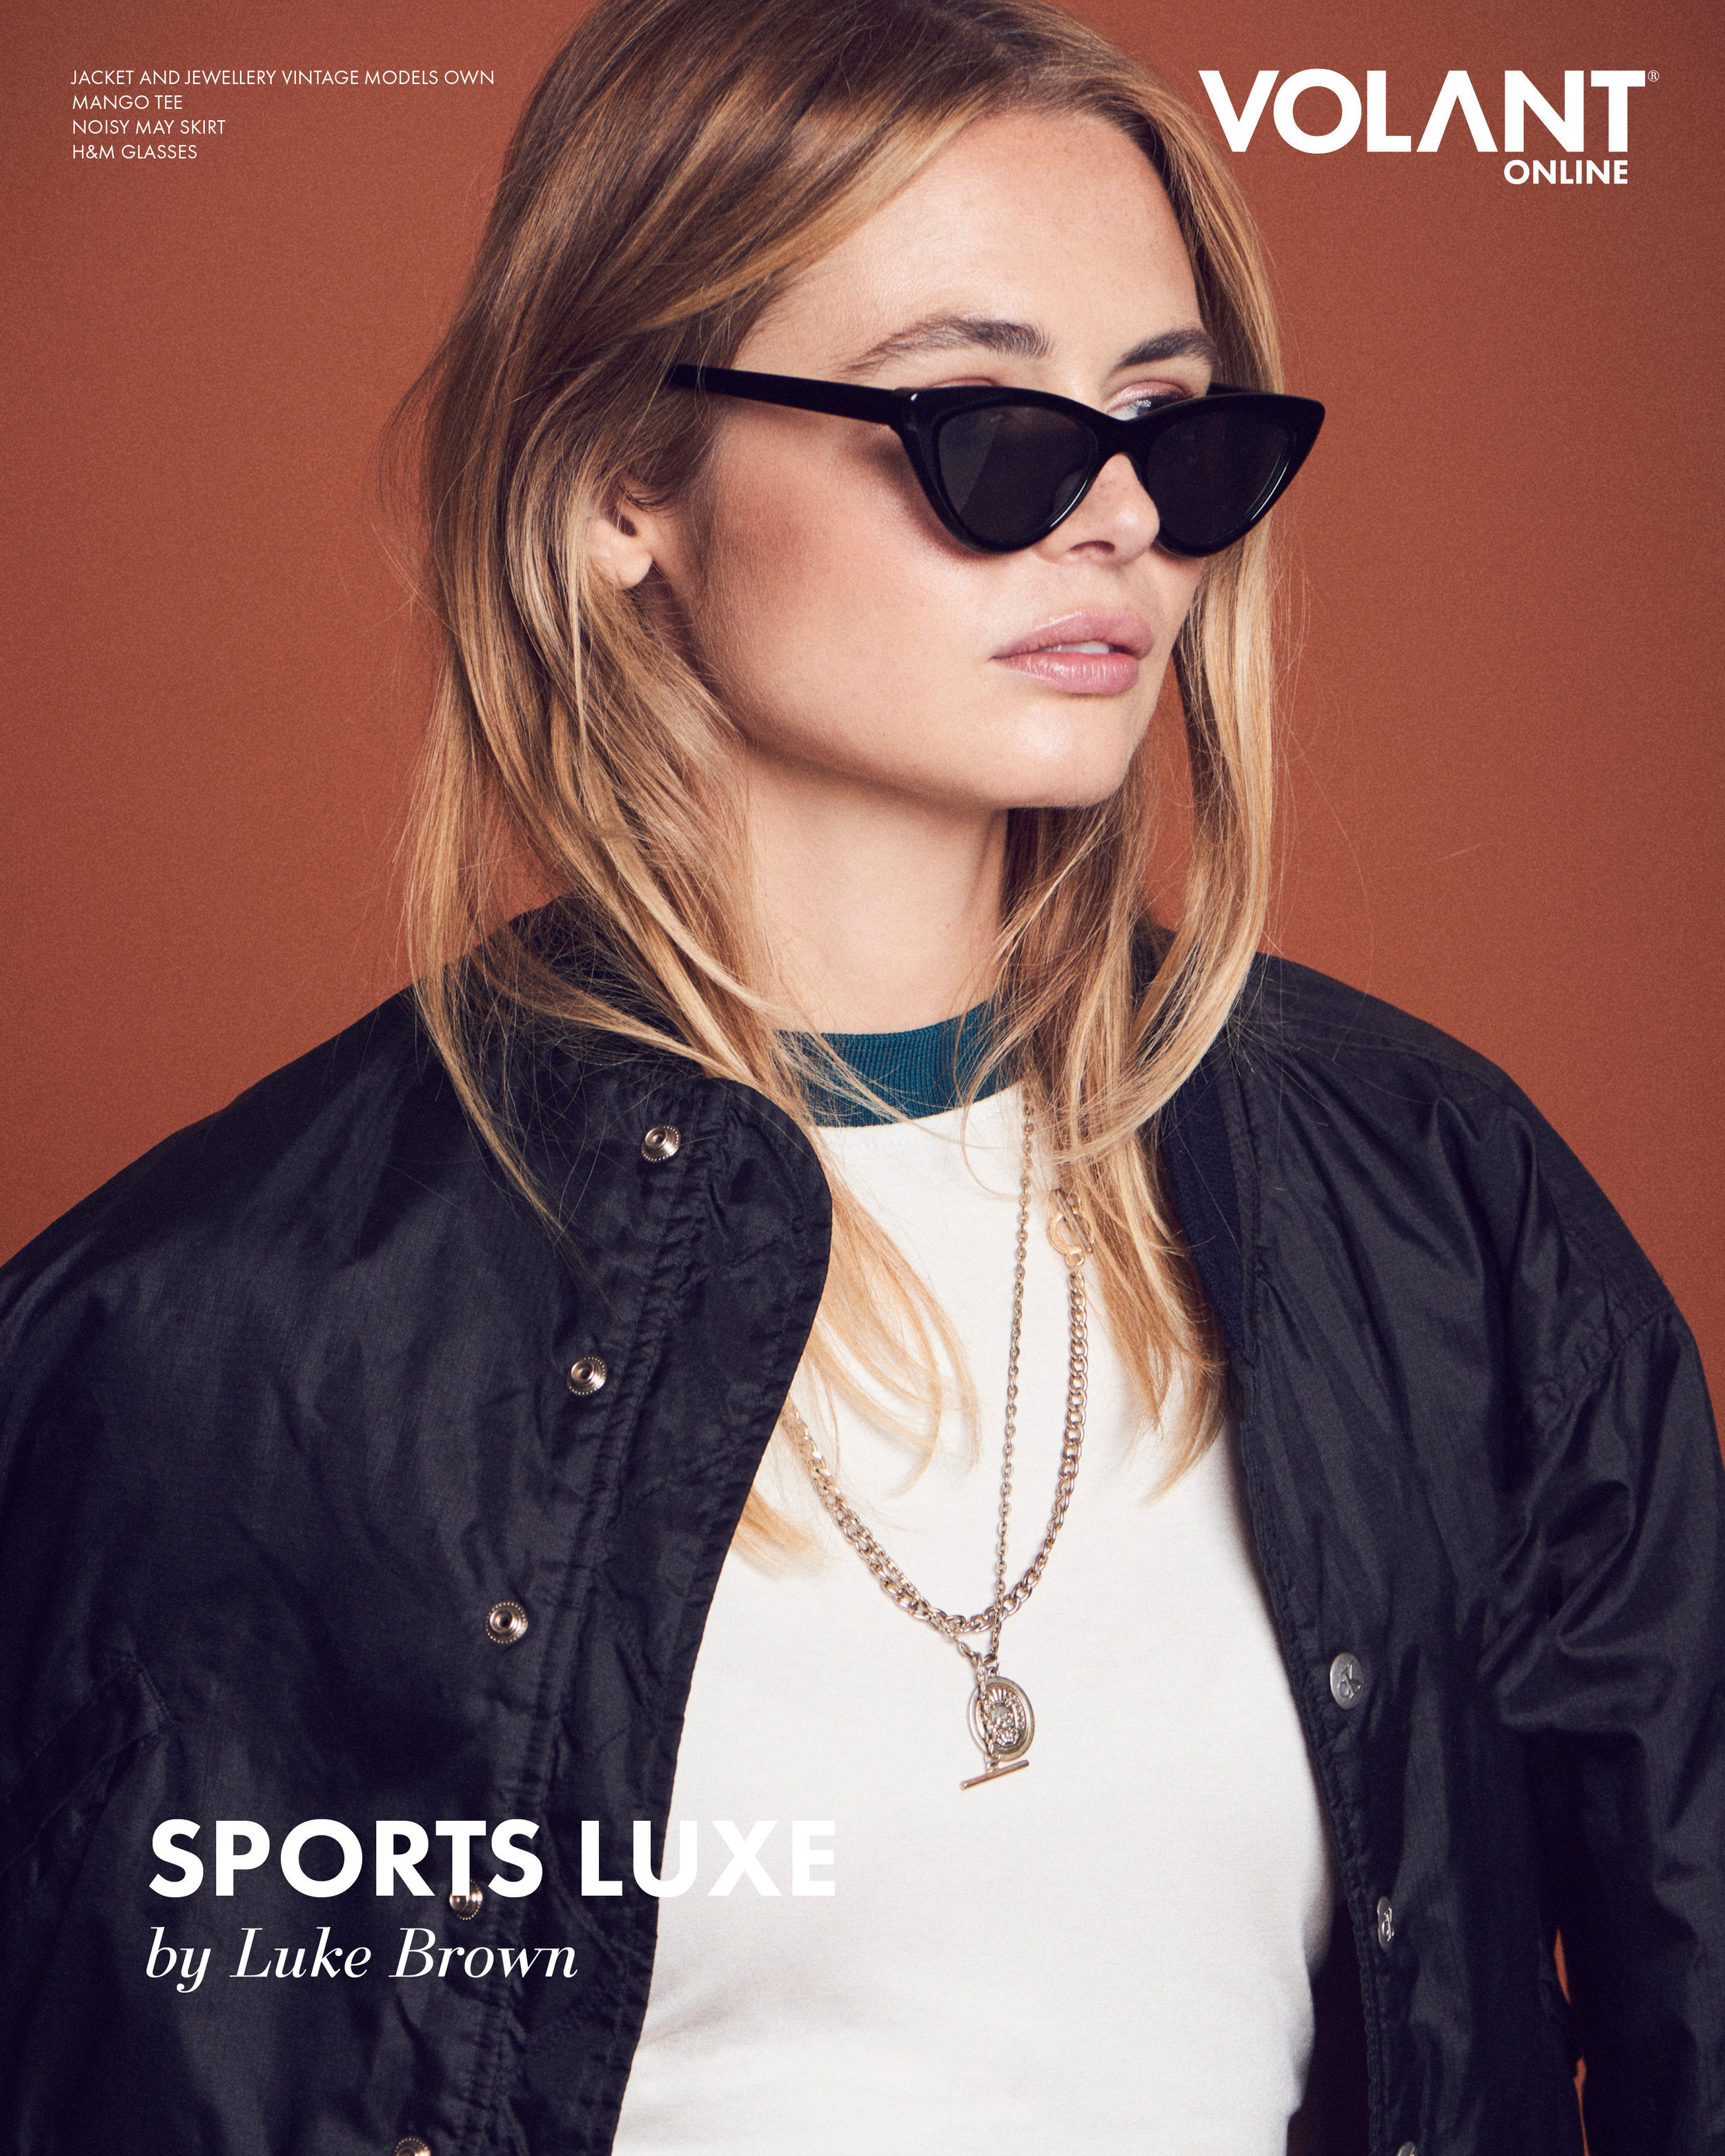 volant-webitorial-sports-luxe.jpg